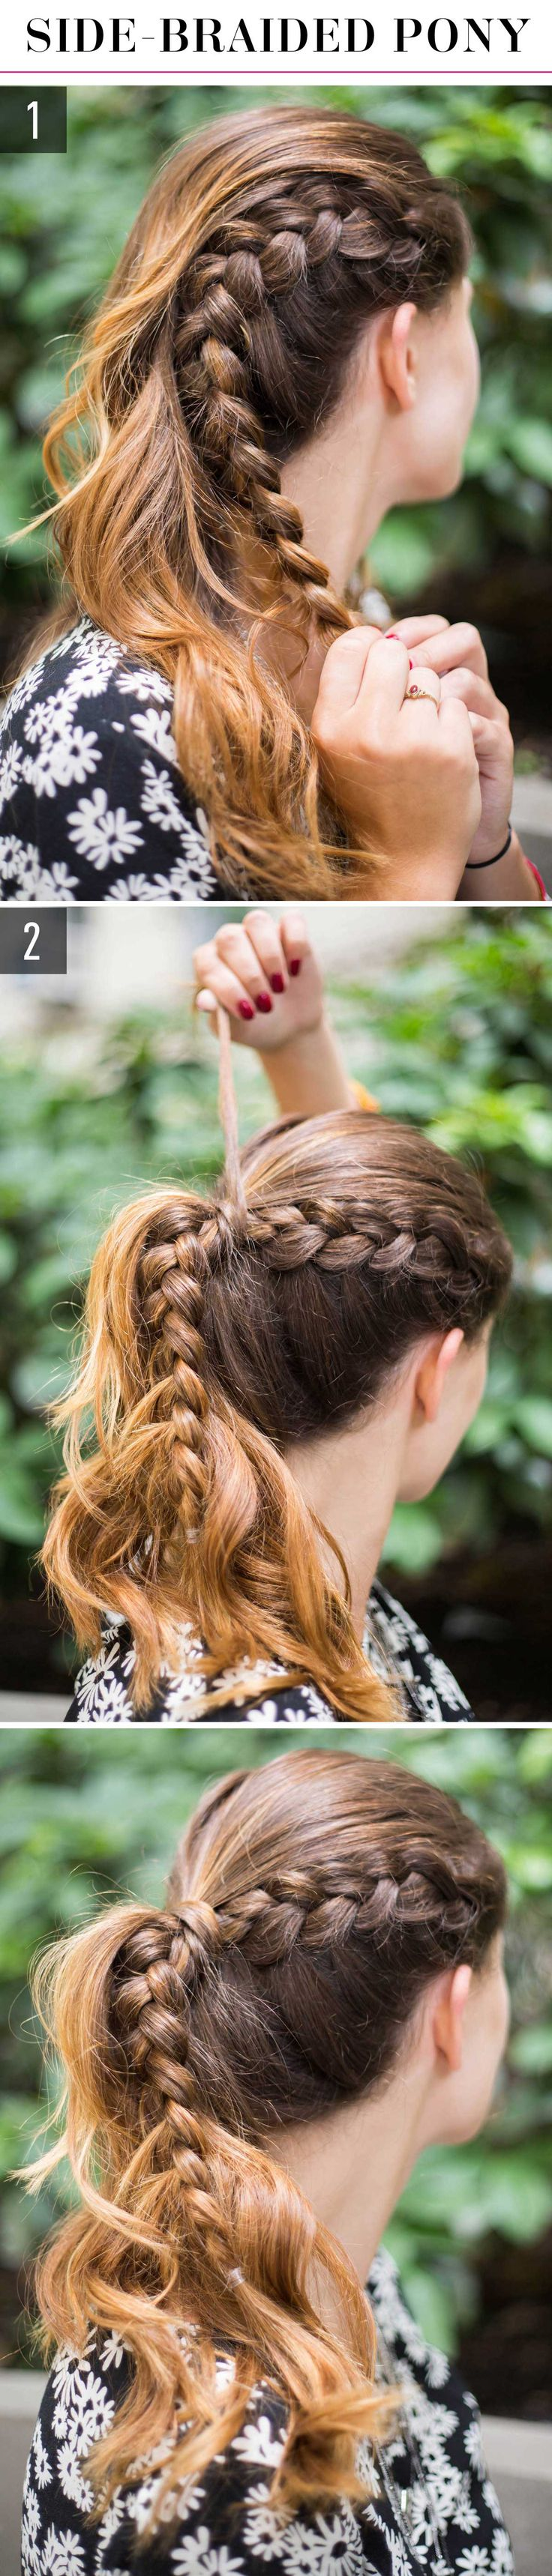 1.French braid a section of hair on one side of your head from the hairline all the way down to the ends, and secure it with a small hair tie. 2.Gather all your hair, including the braid, into a ponytail, secure it with a hair tie, and wrap a sliver of hair around the elastic to conceal it. Pin the hair in place.